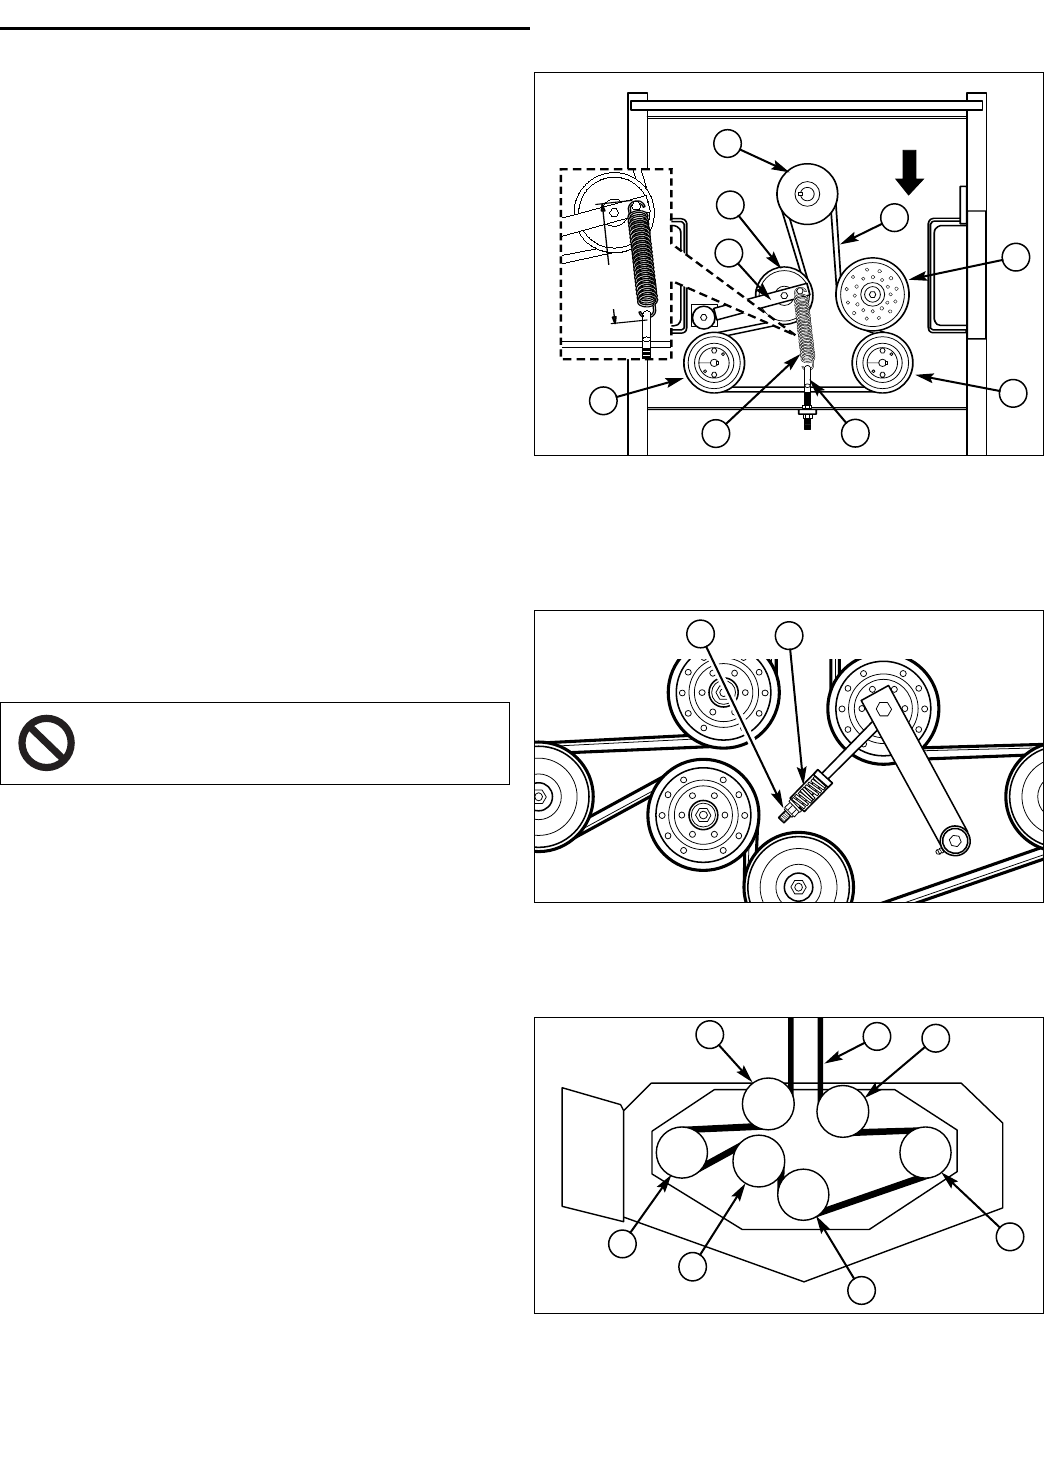 Mercedes W210 E320 Engine Diagram as well Mercedes C220 Wiring Harness likewise 2006 Mercedes C280 Parts Diagram in addition Airmatic furthermore W203 Wiring Diagram. on 2003 mercedes e320 electrical problems